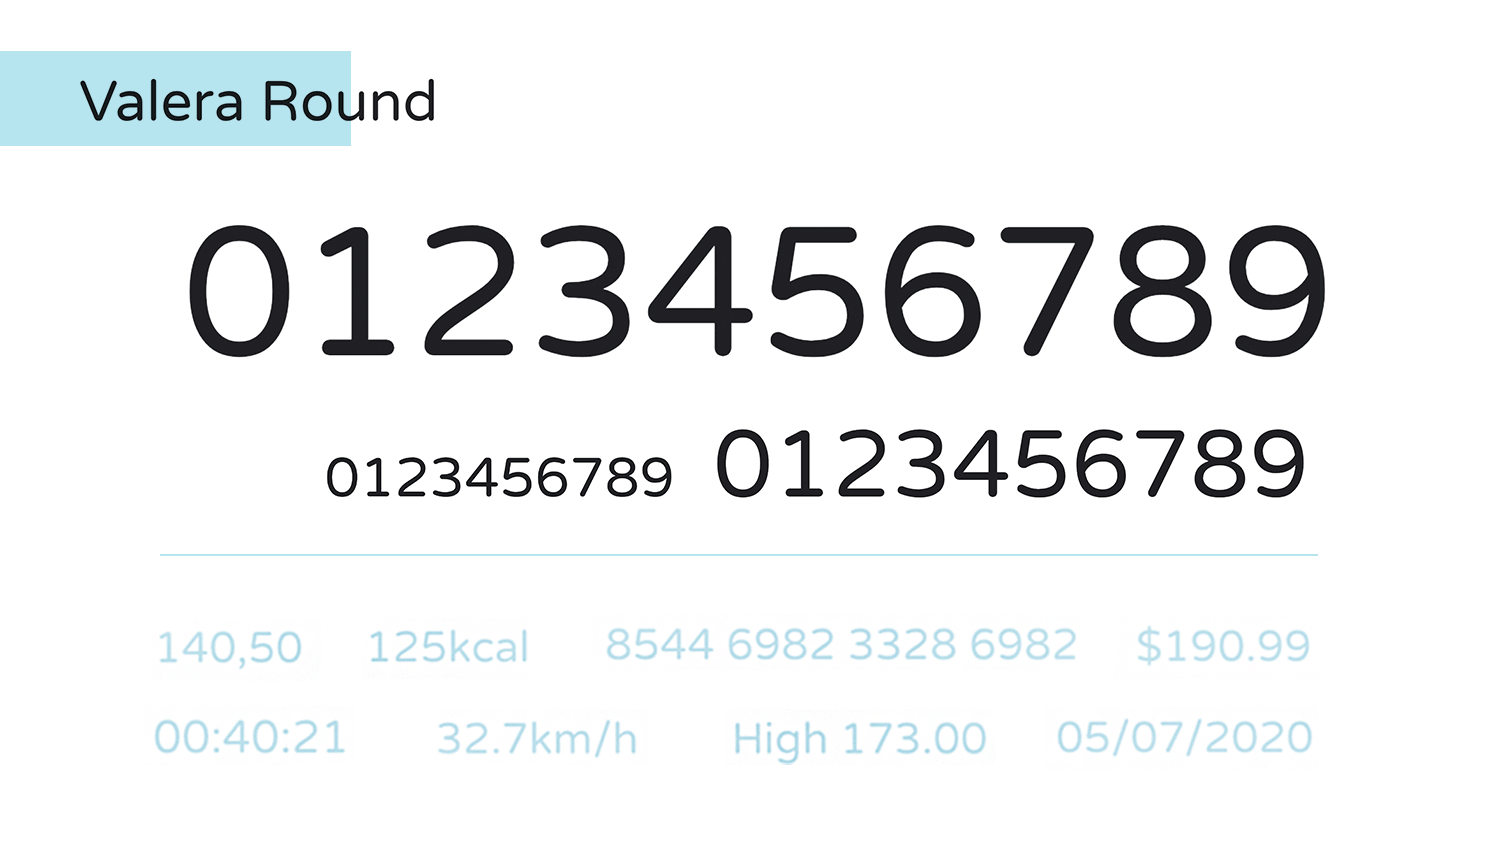 valera round as free number typeface from google